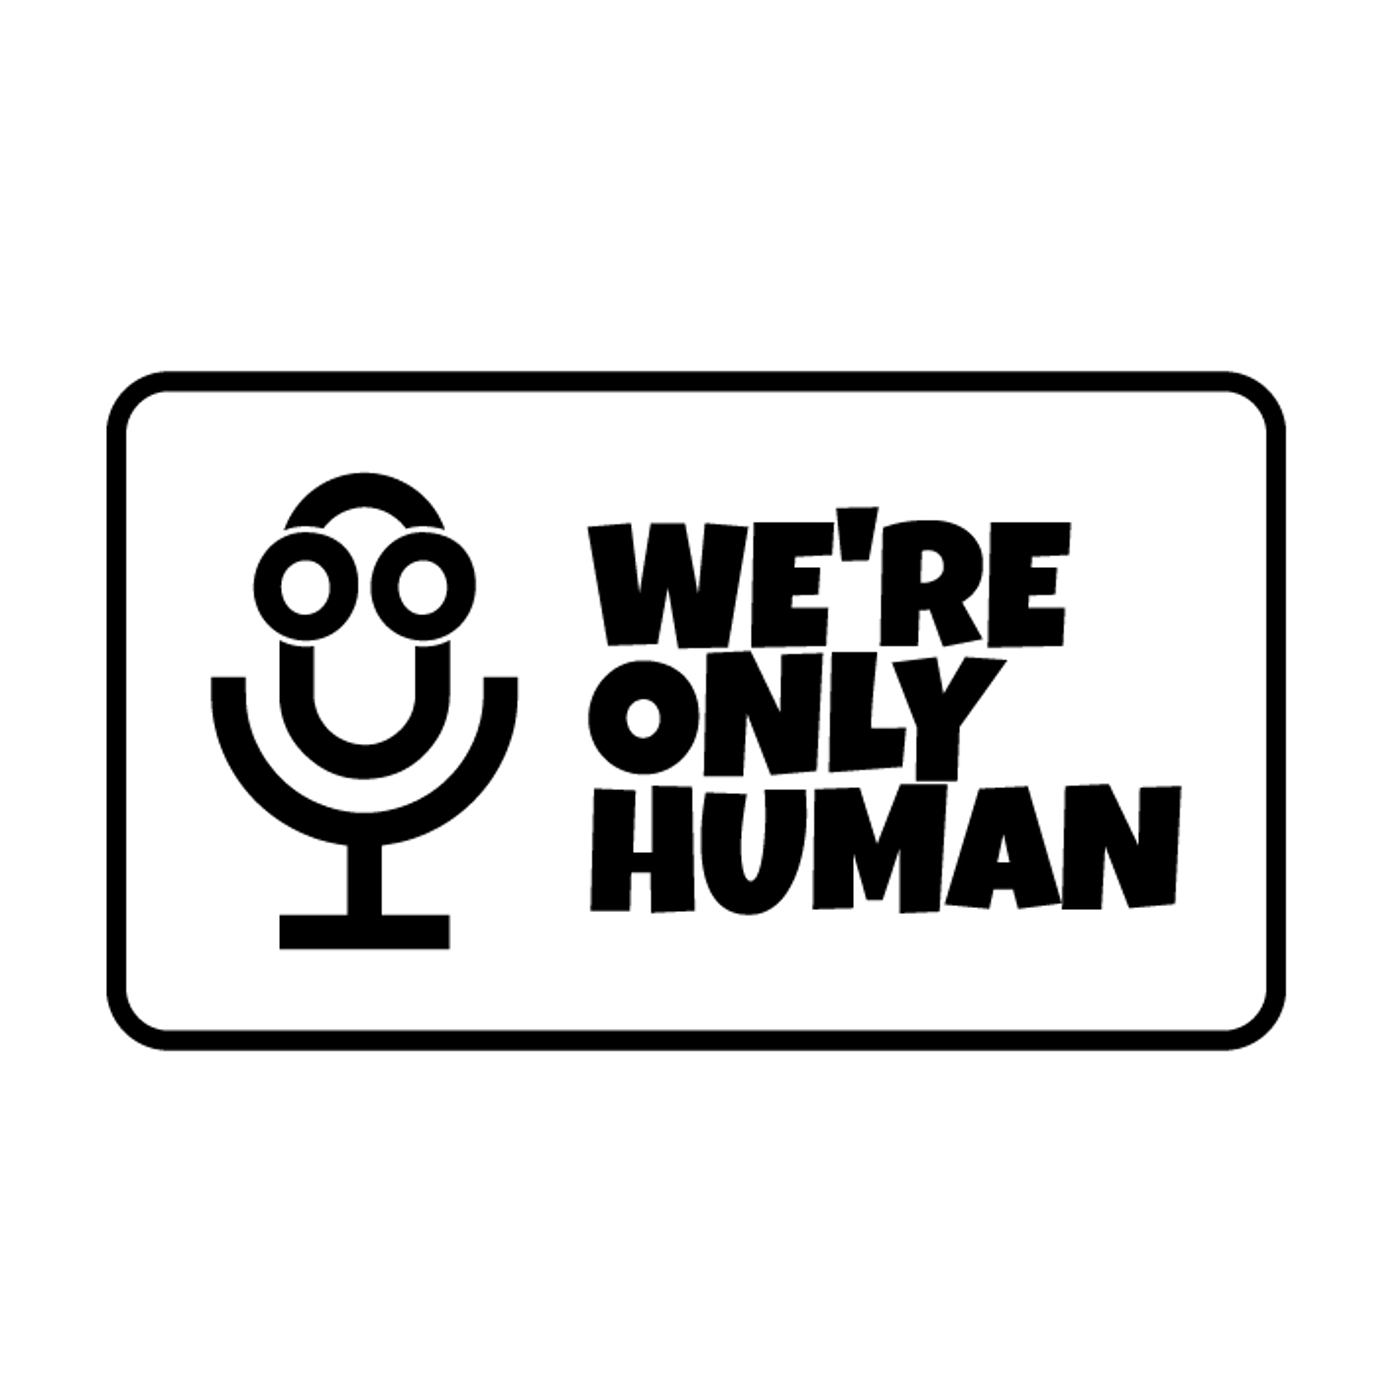 We're Only Human 19 - Lessons on Culture & Engagement from the Trucking Industry